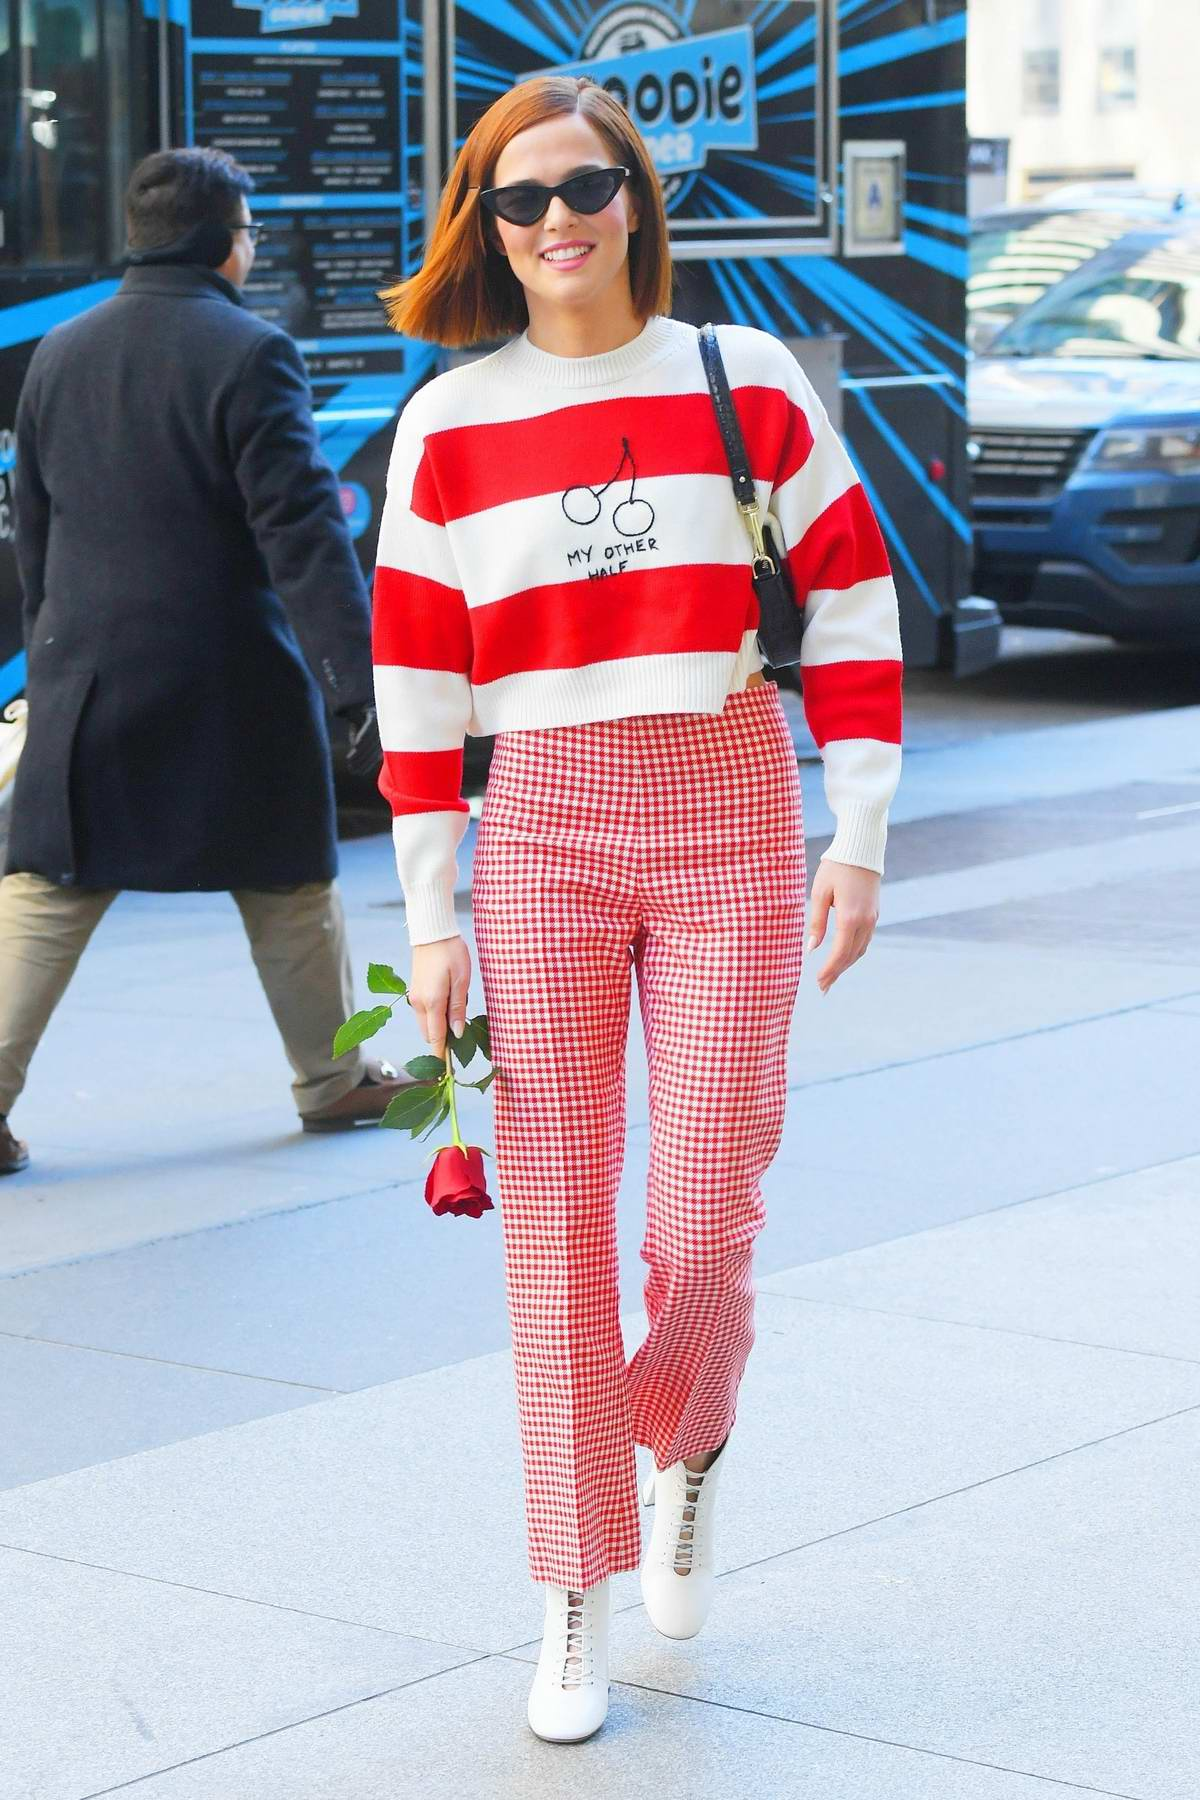 Zoey Deutch wears red and white for Valentine's day as she stops by SiriusXM in New York City